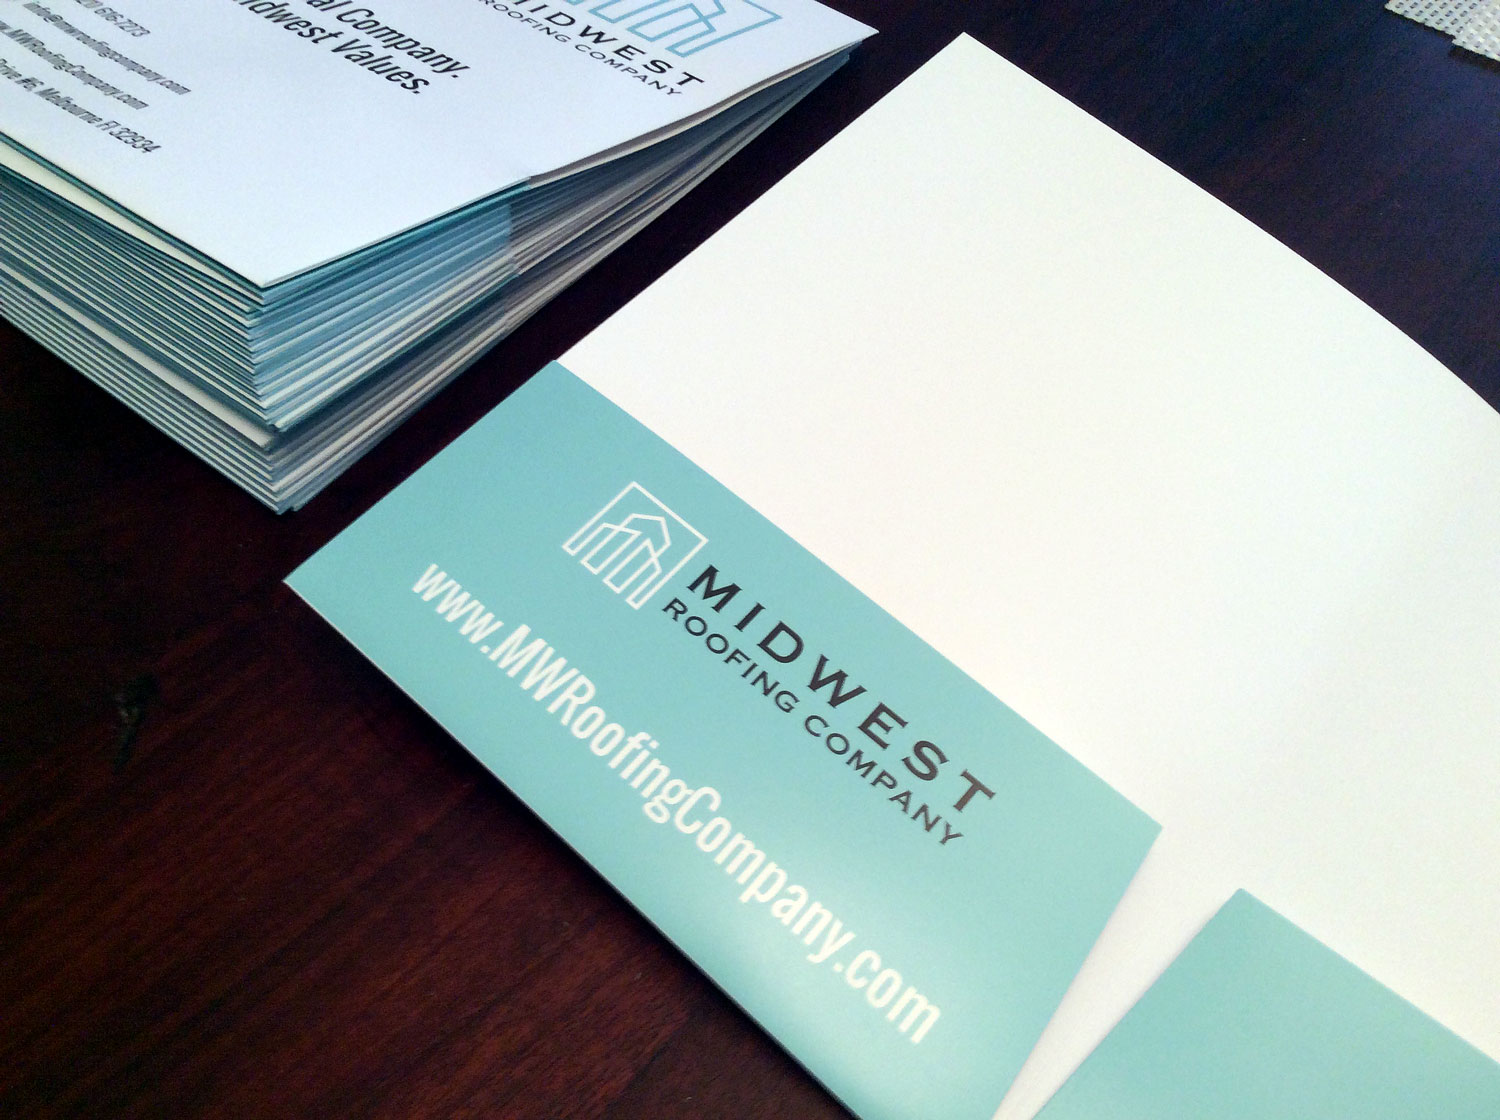 Midwest Roofing Co.: Folders 05